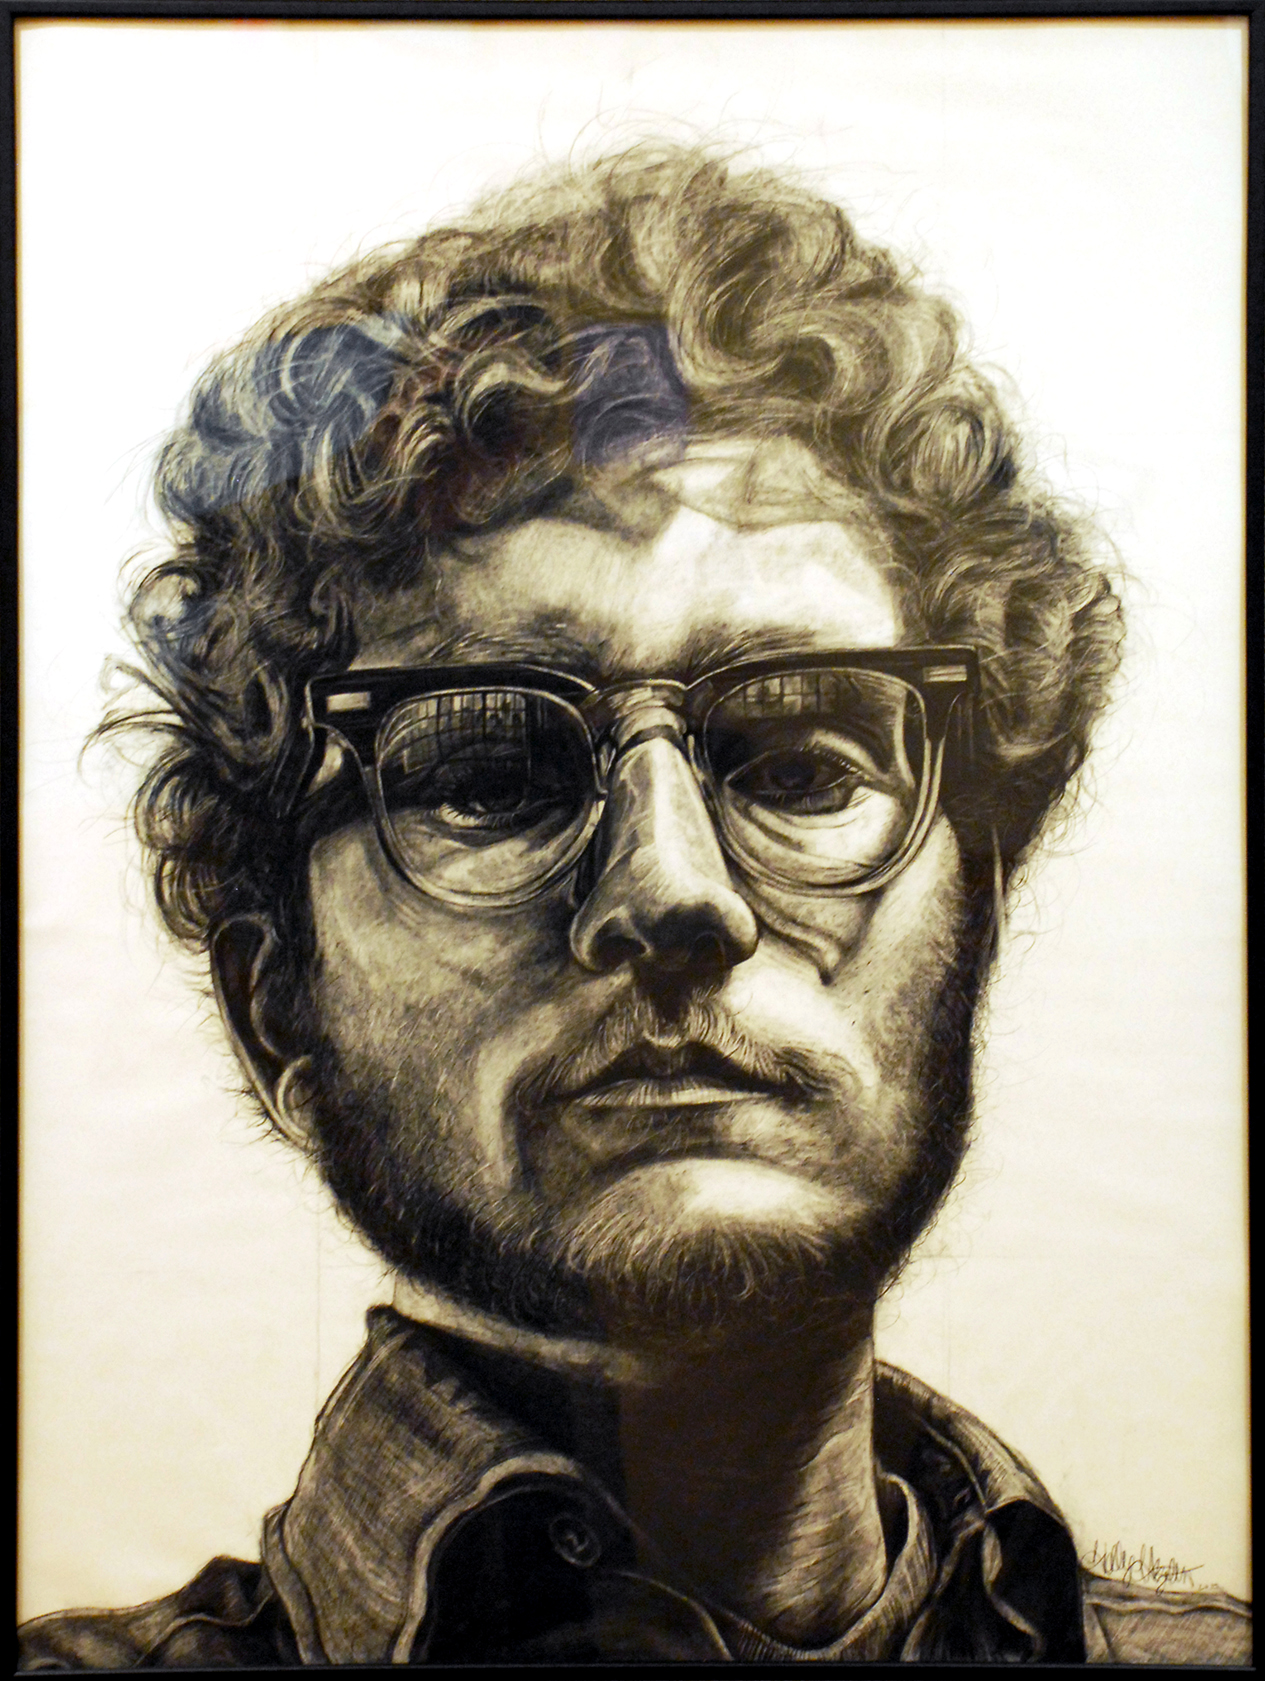 """Frank (After Chuck Close)""  by Holly Hazelton"